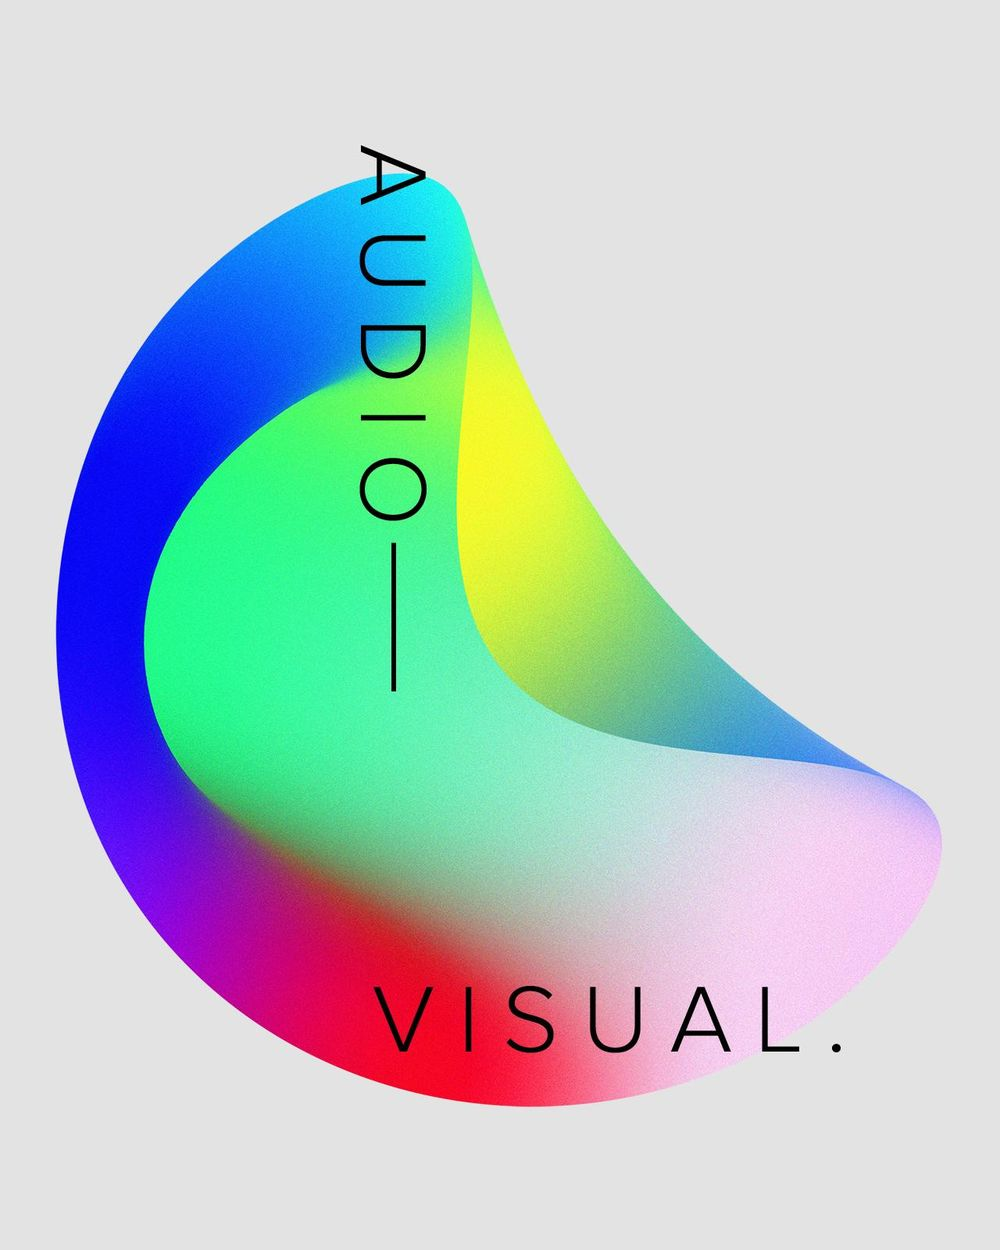 Audio visual - image 1 - student project